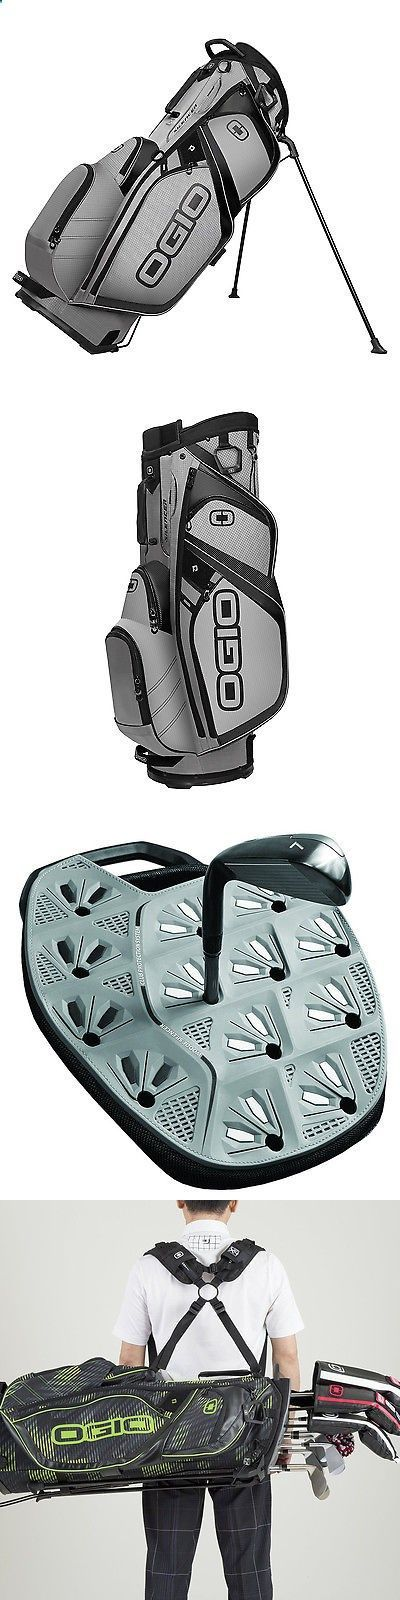 Golf Bags - Golf Club Bags 30109: Ogio Silencer Stand Protective And Quiet Golf Bag With 14-Way Top, Pewter Gray BUY IT NOW ONLY: $171.99 #golfbags